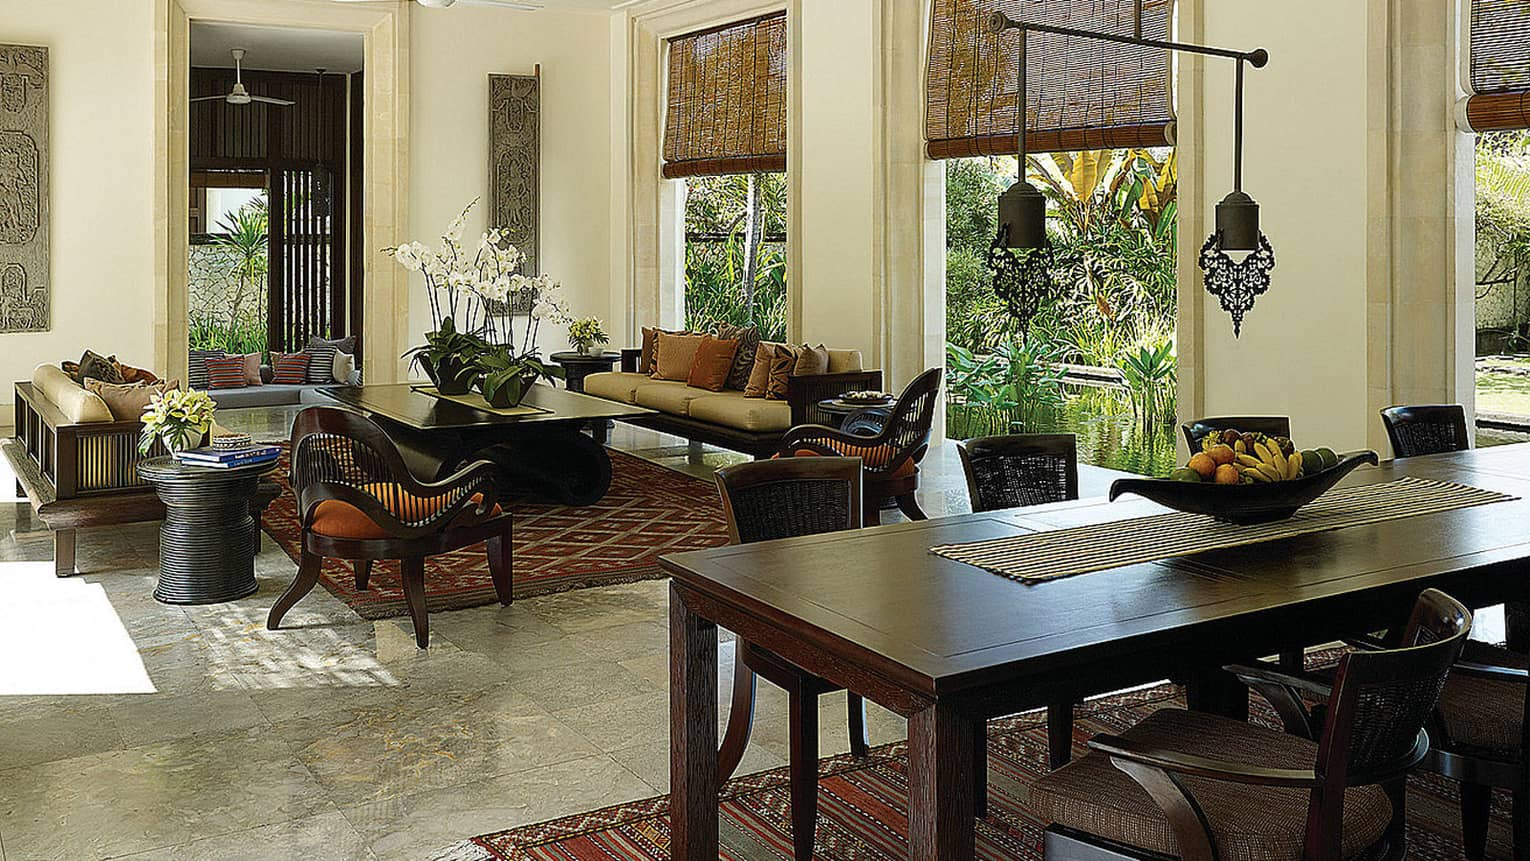 Large wood dining table near living area, Balinese textile rugs, windows overlooking tropical garden